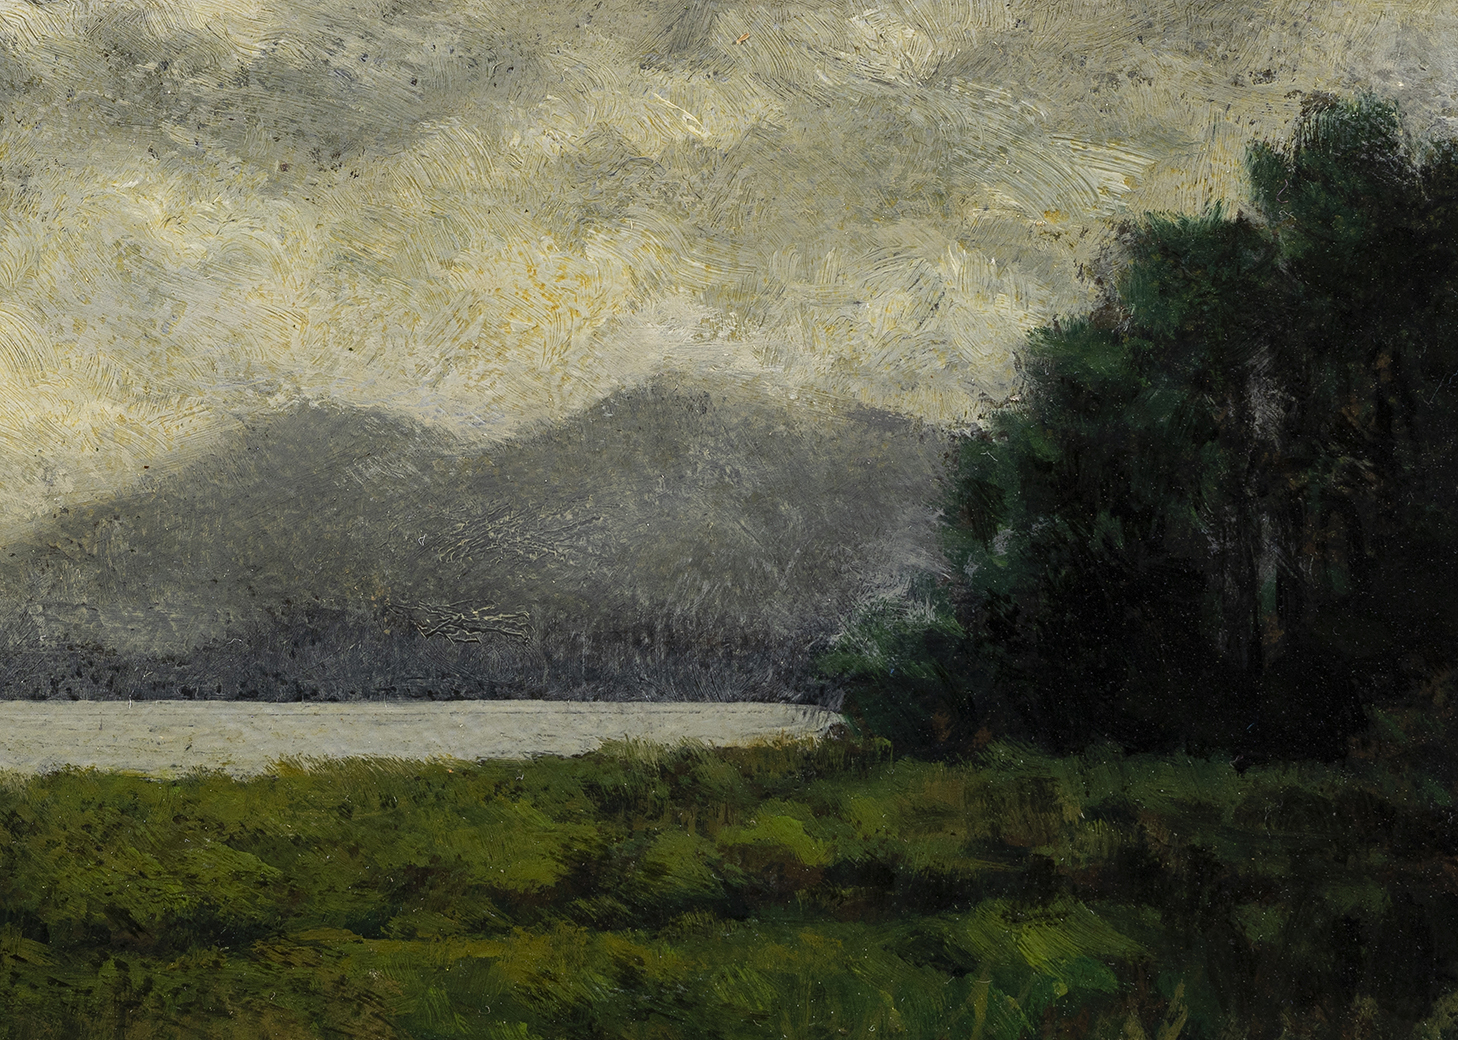 After the Storm by M Francis McCarthy - 5x7 (Detail)